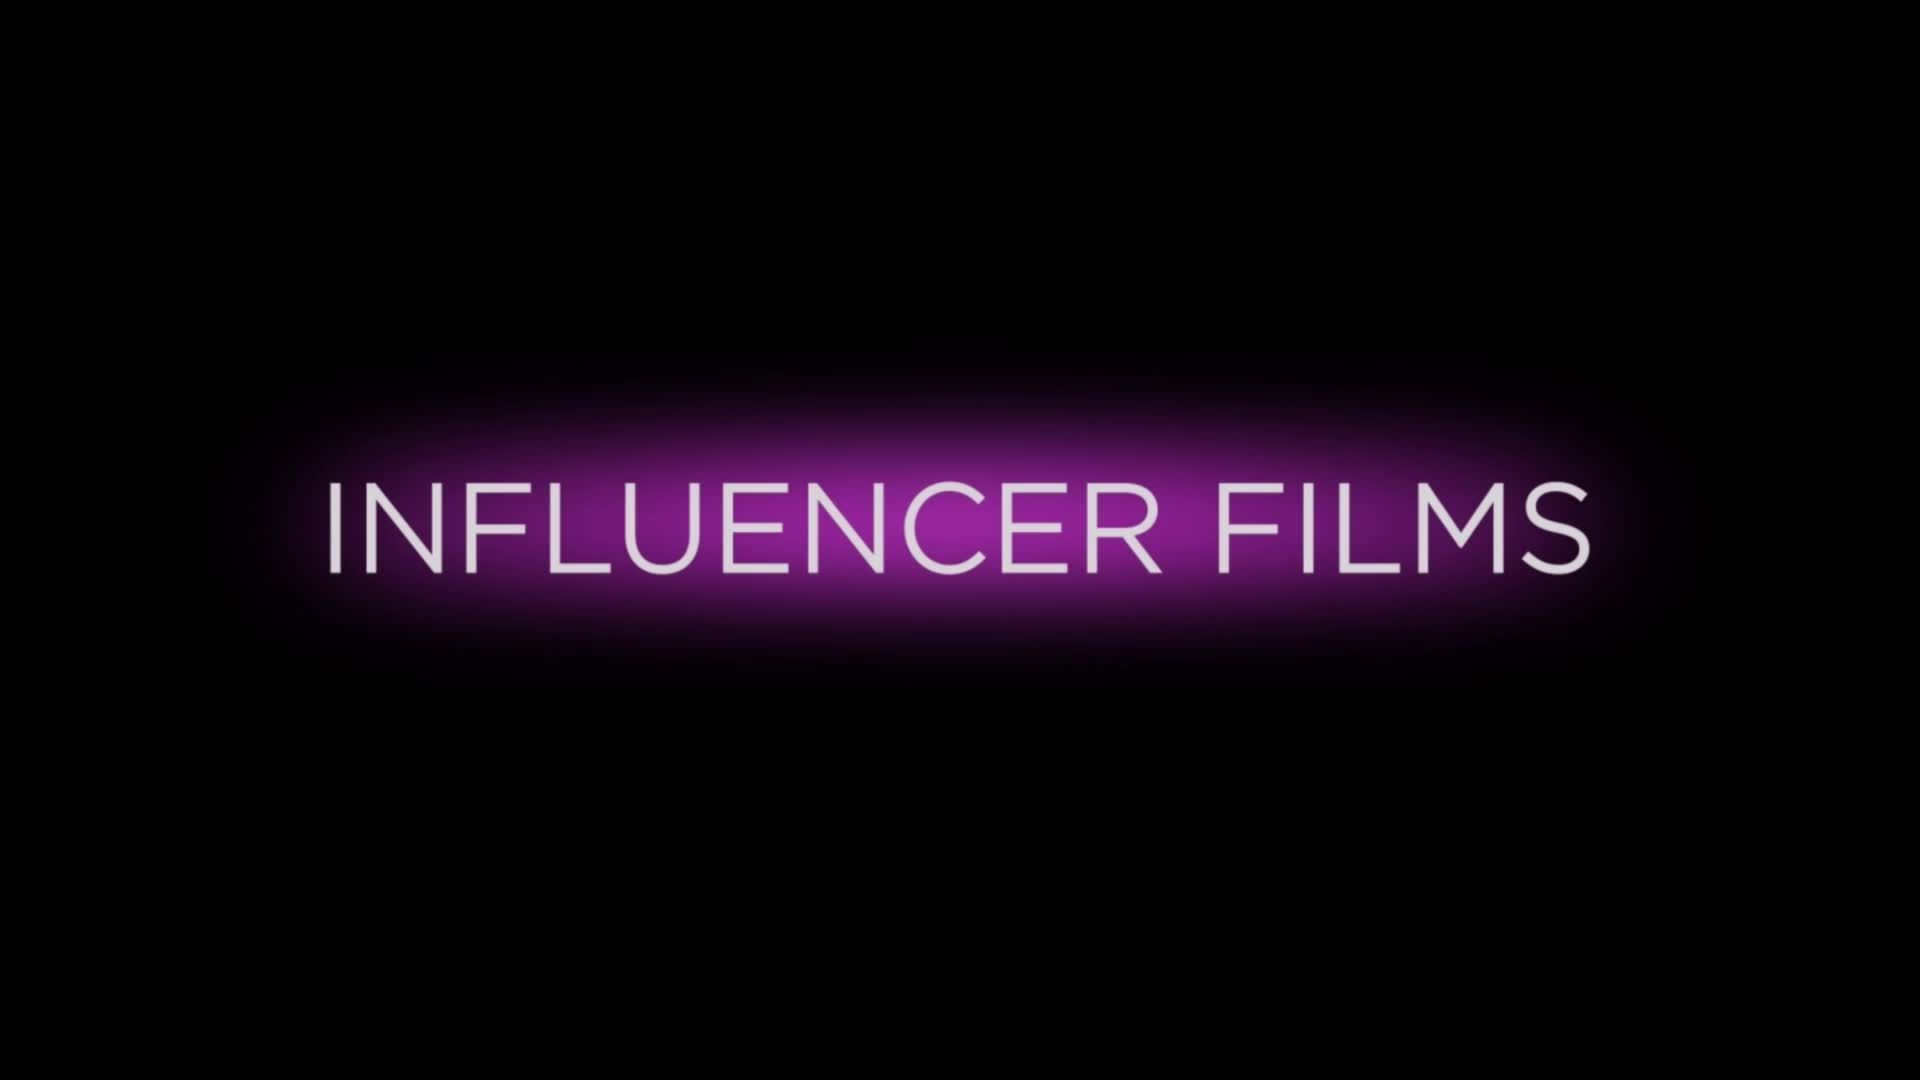 INFLUENCER FILM